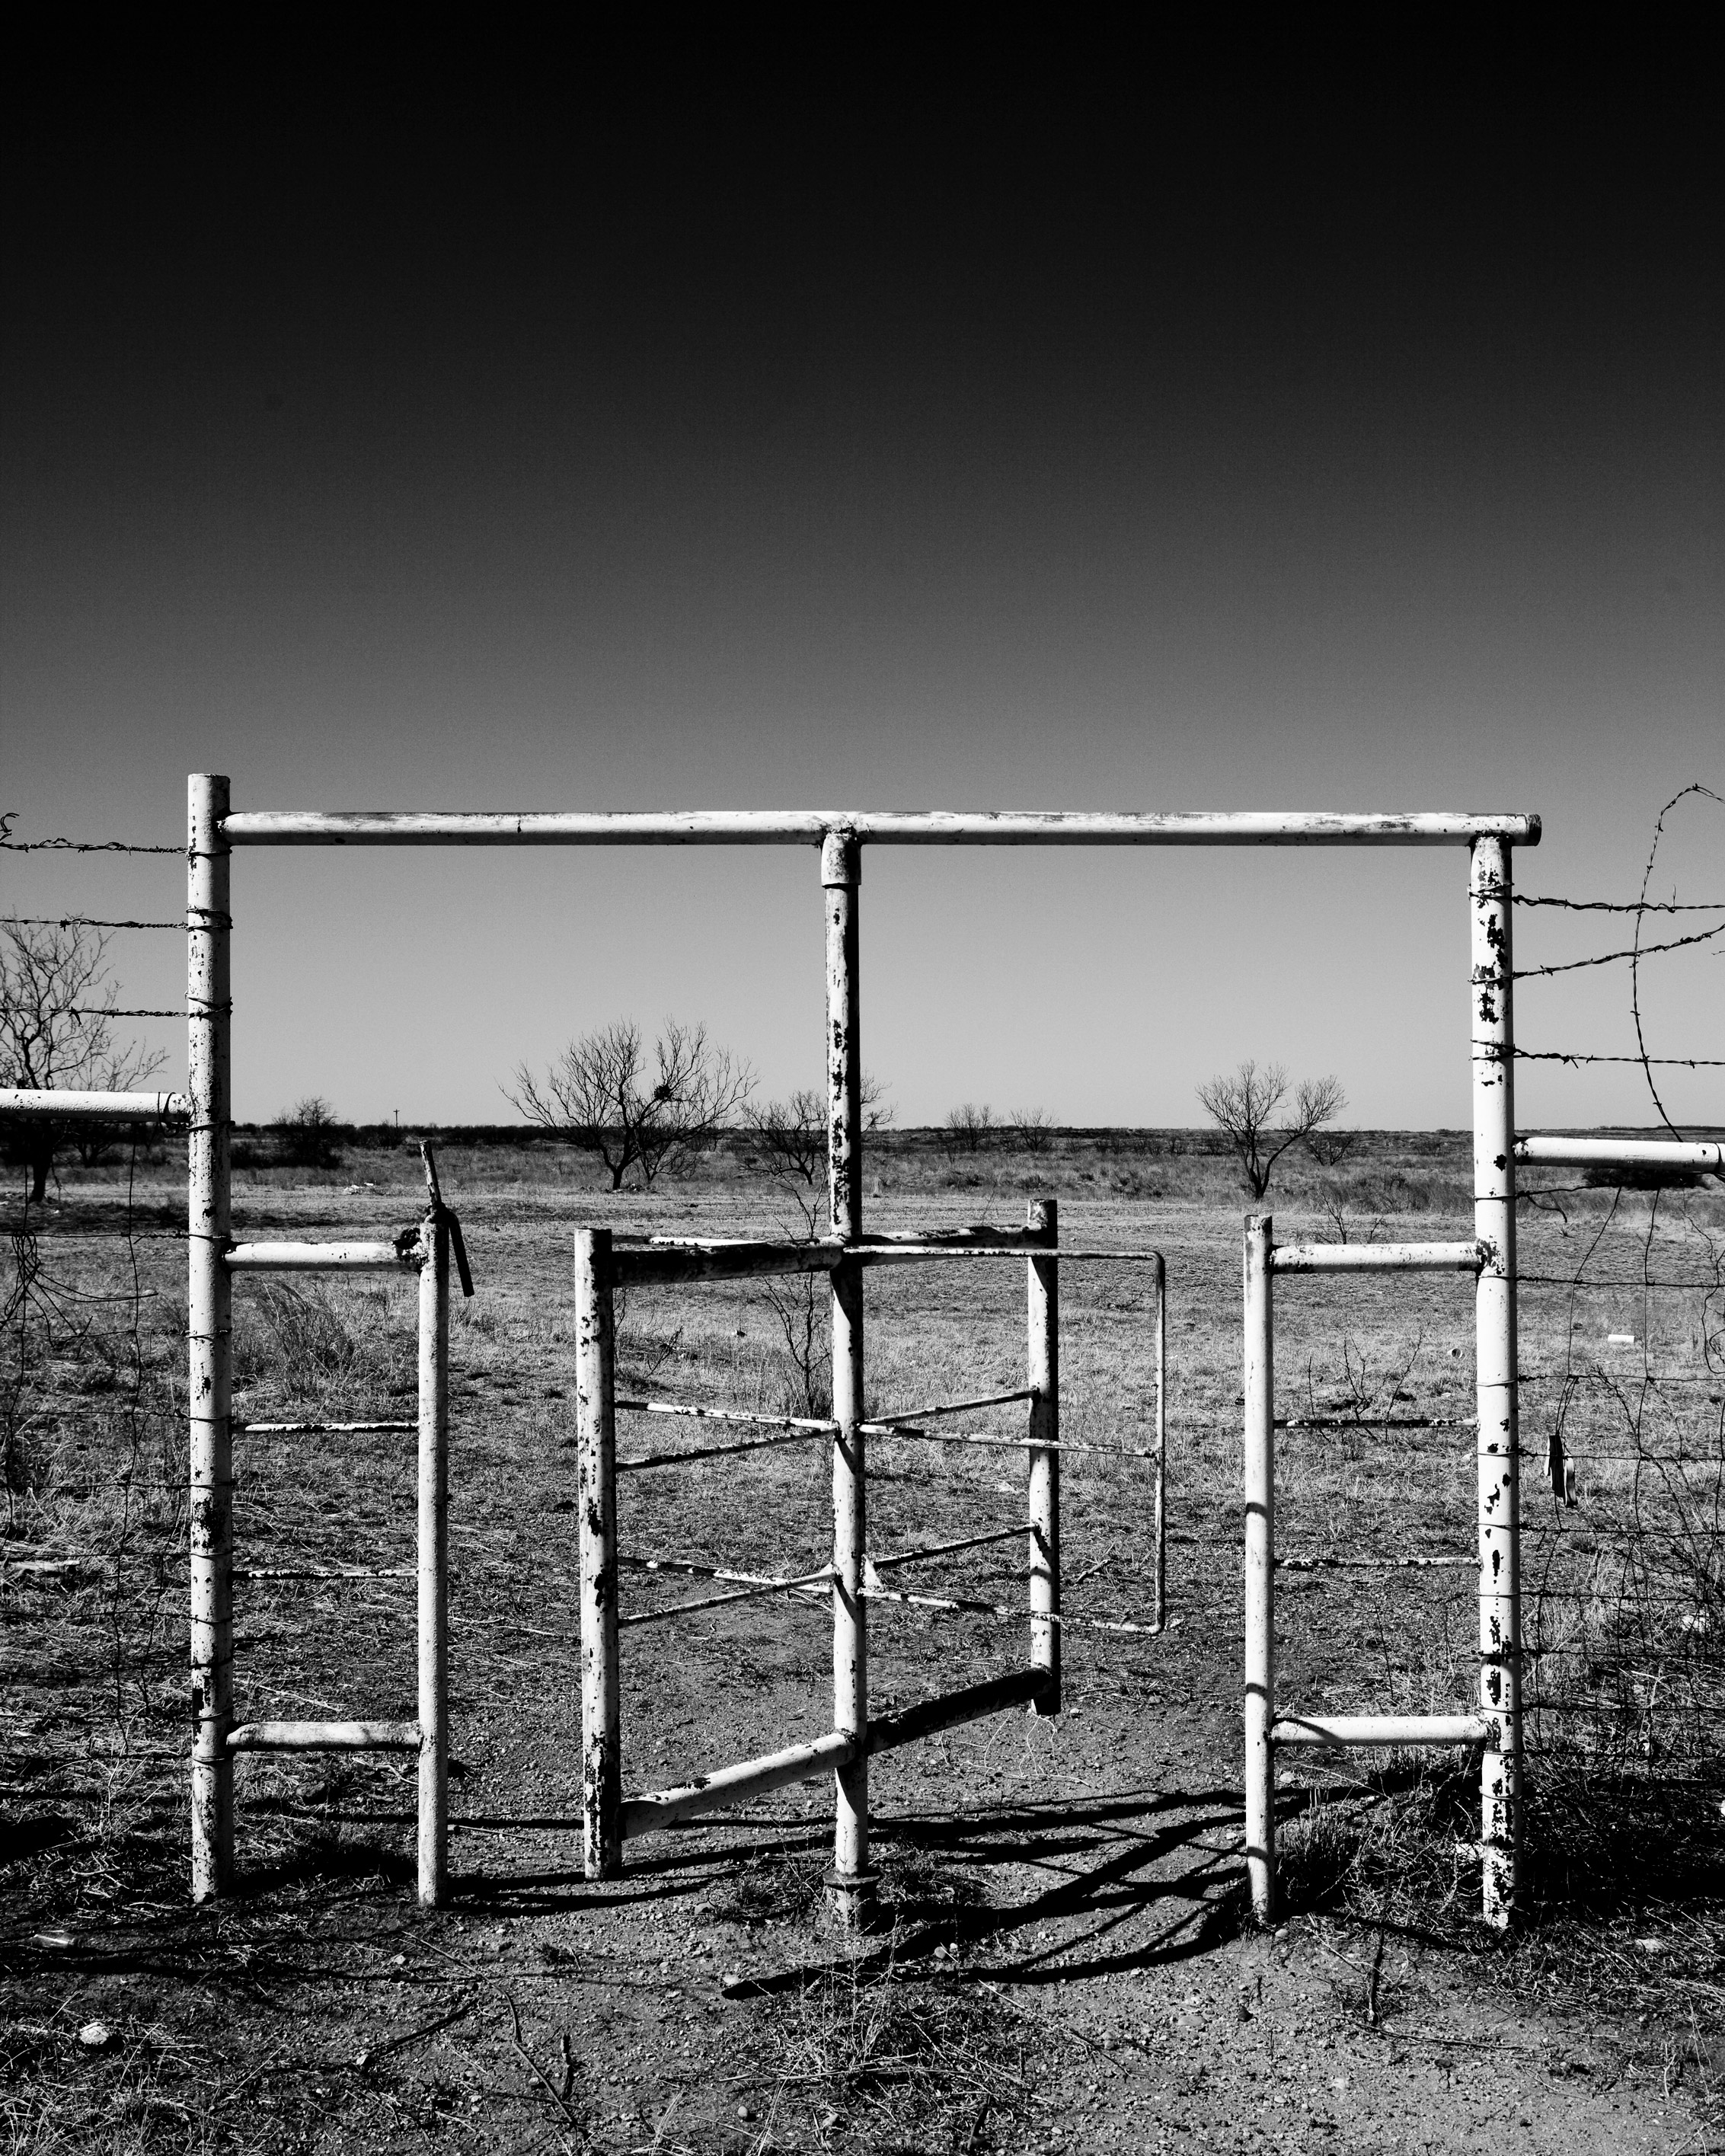 West_Texas_2009_MG_1388